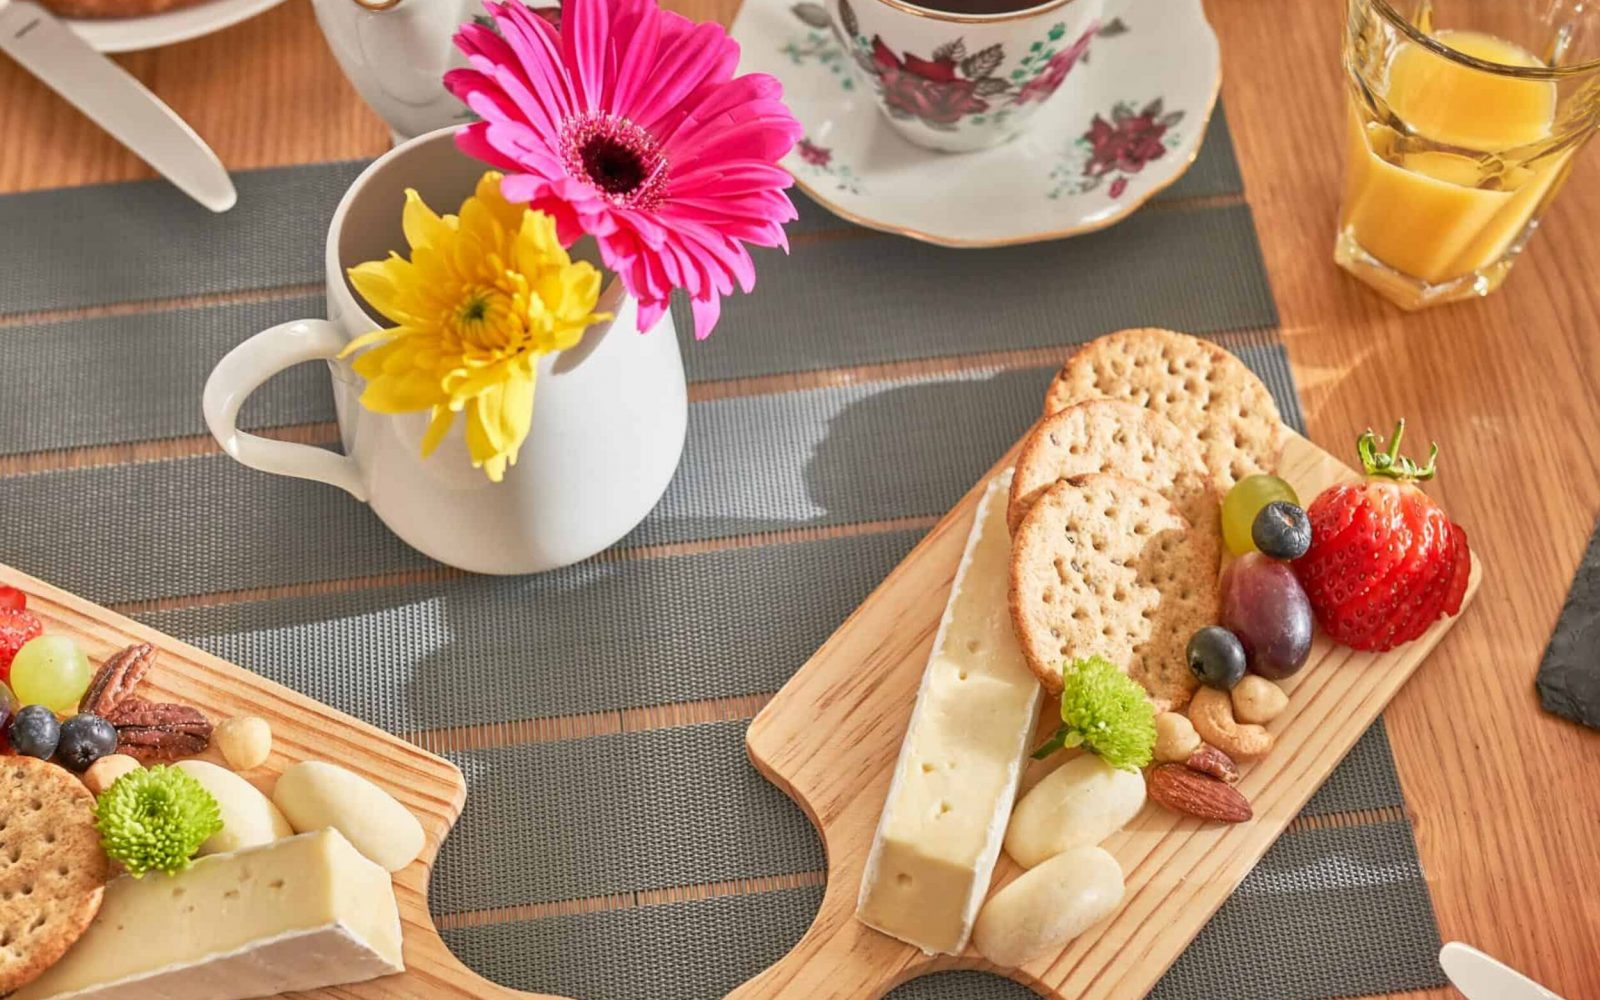 Mouth watering spread of Cheese & crackers presented on wooden boards